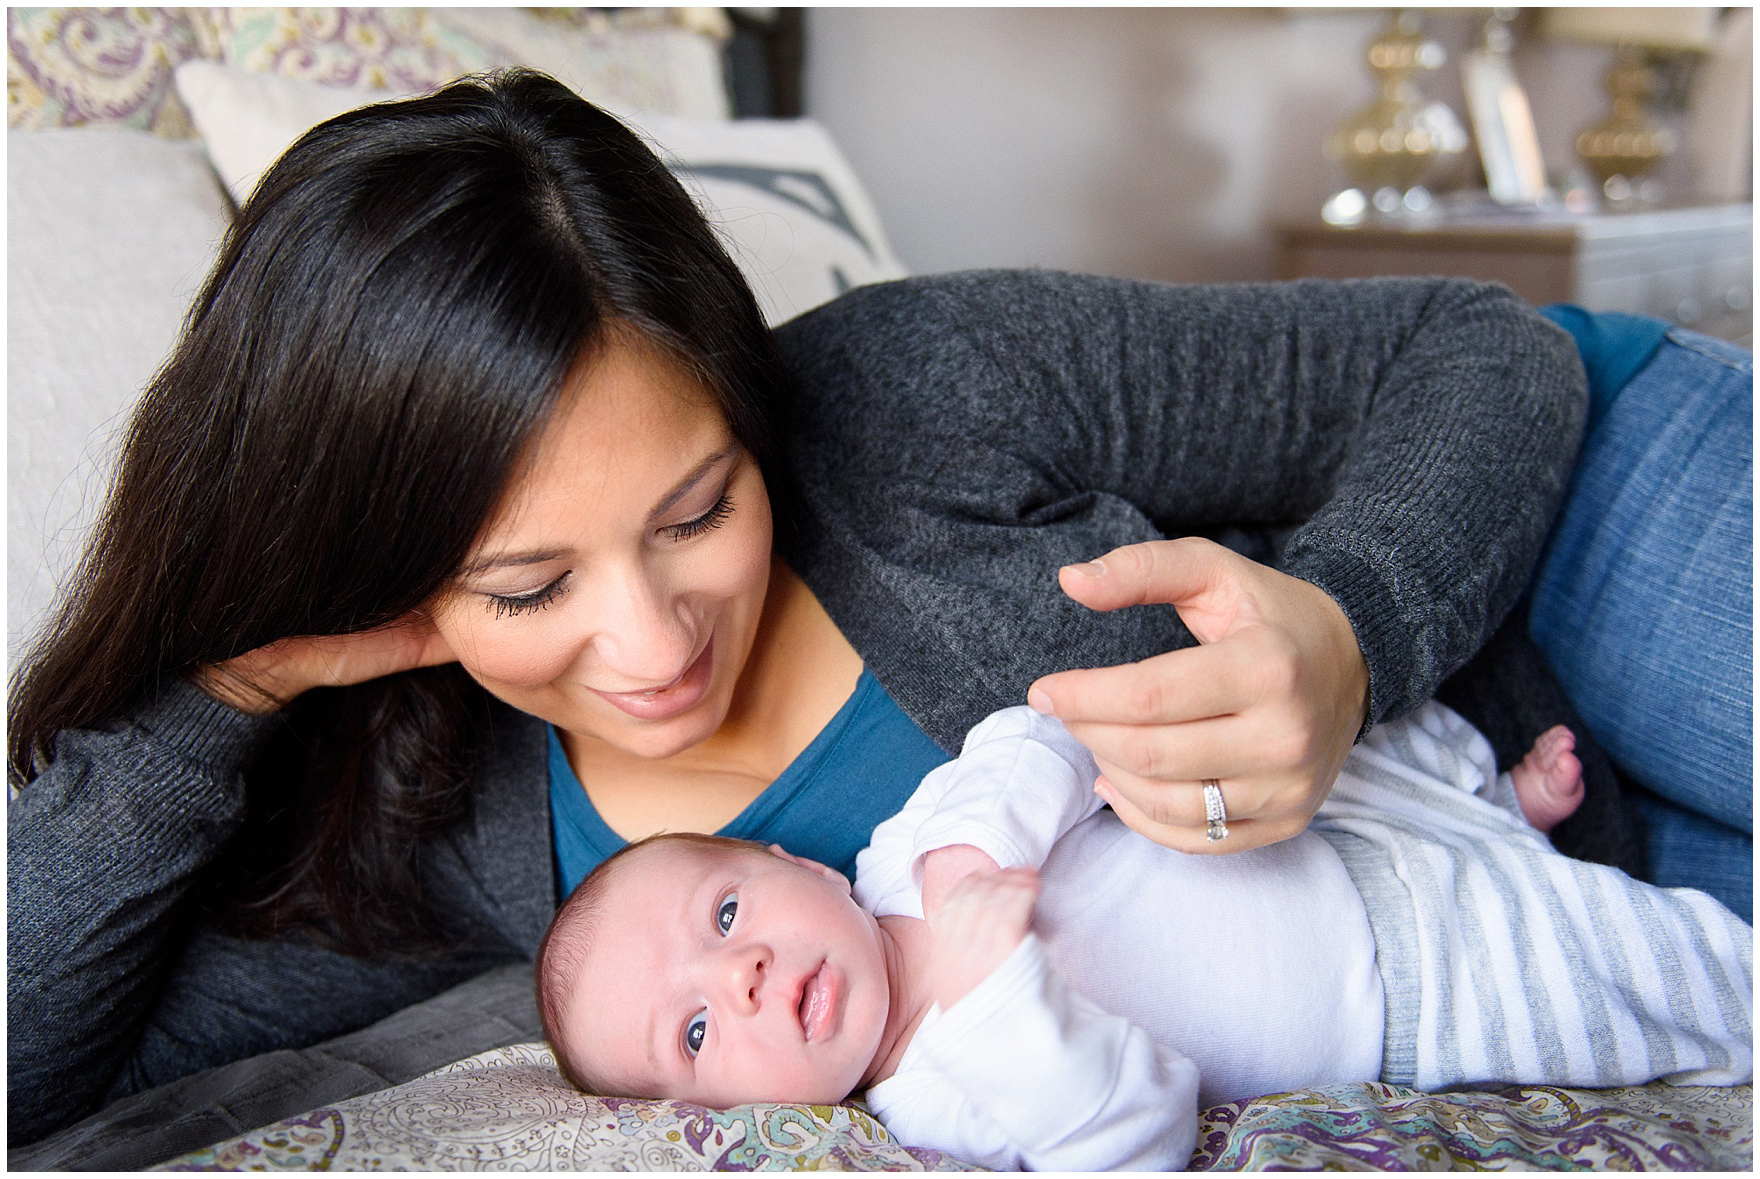 Mom cuddles baby boy during a Lincoln Park lifestyle newborn session in Chicago.